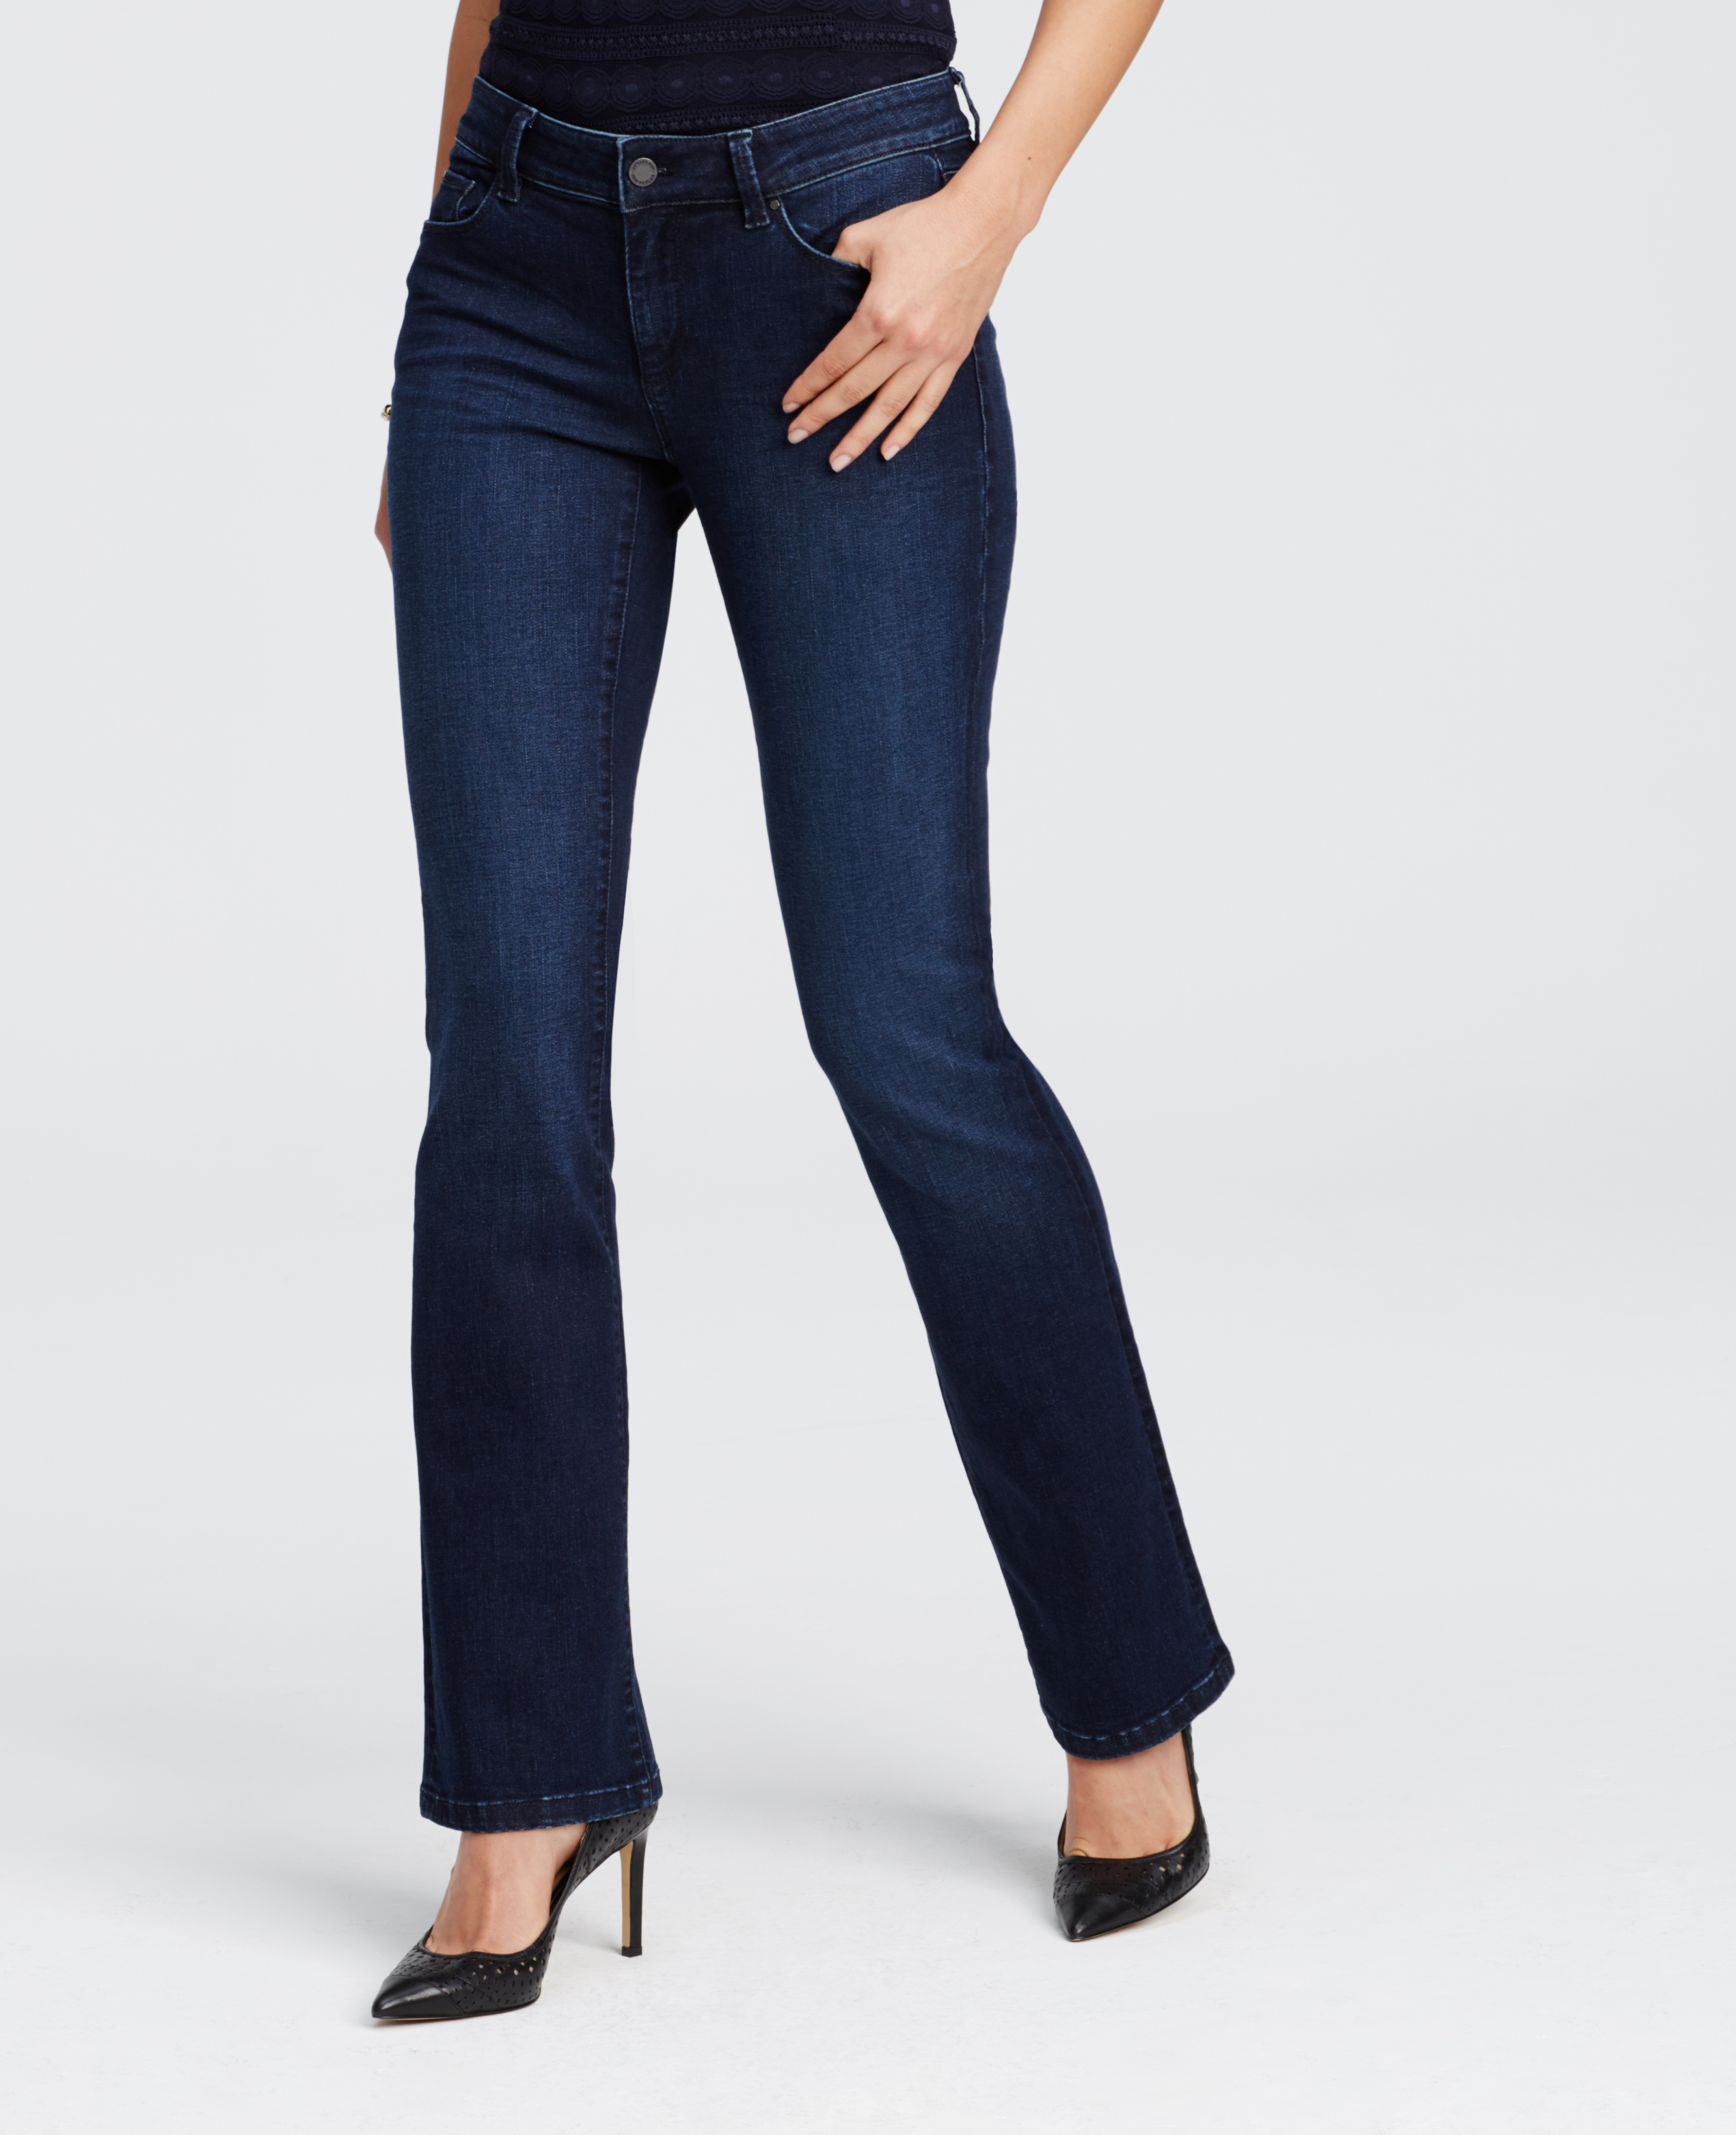 Best bootcut jeans for petites 2015